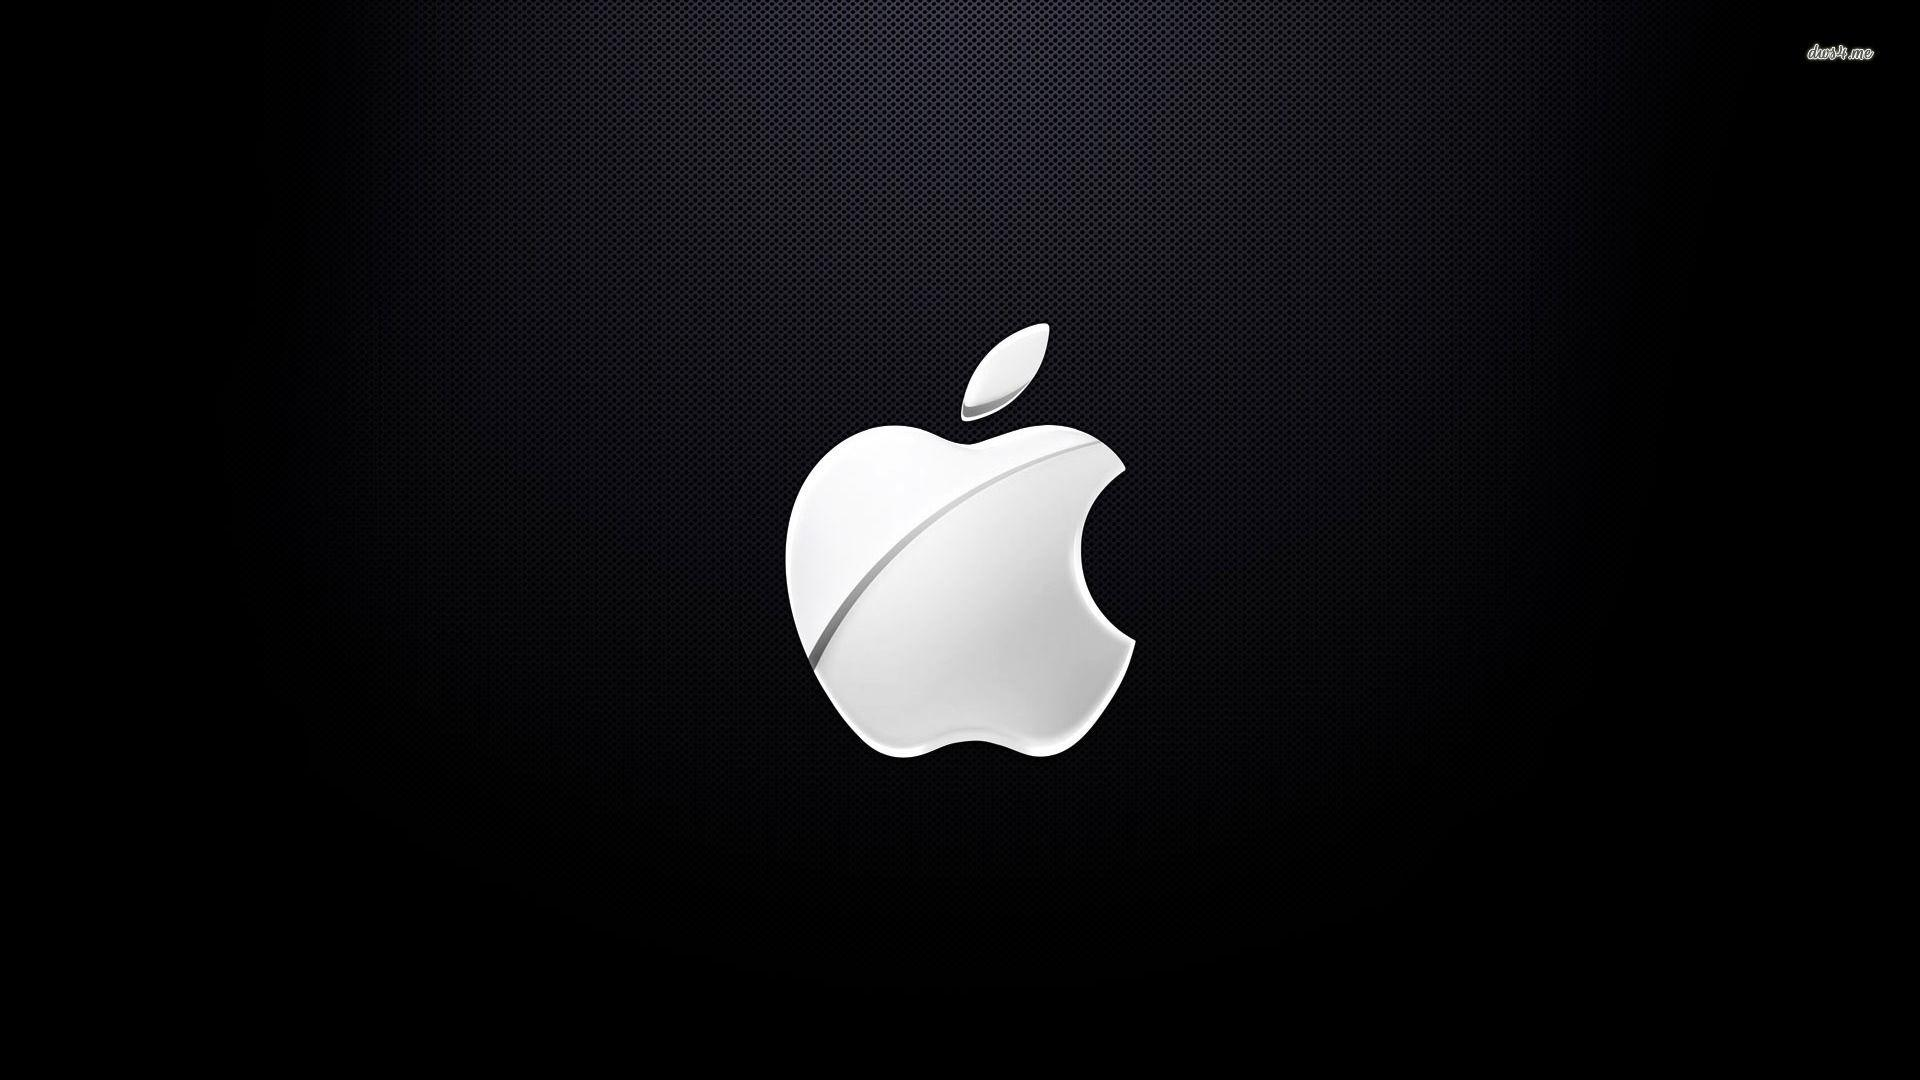 Apple Wallpapers 1920x1080 Download